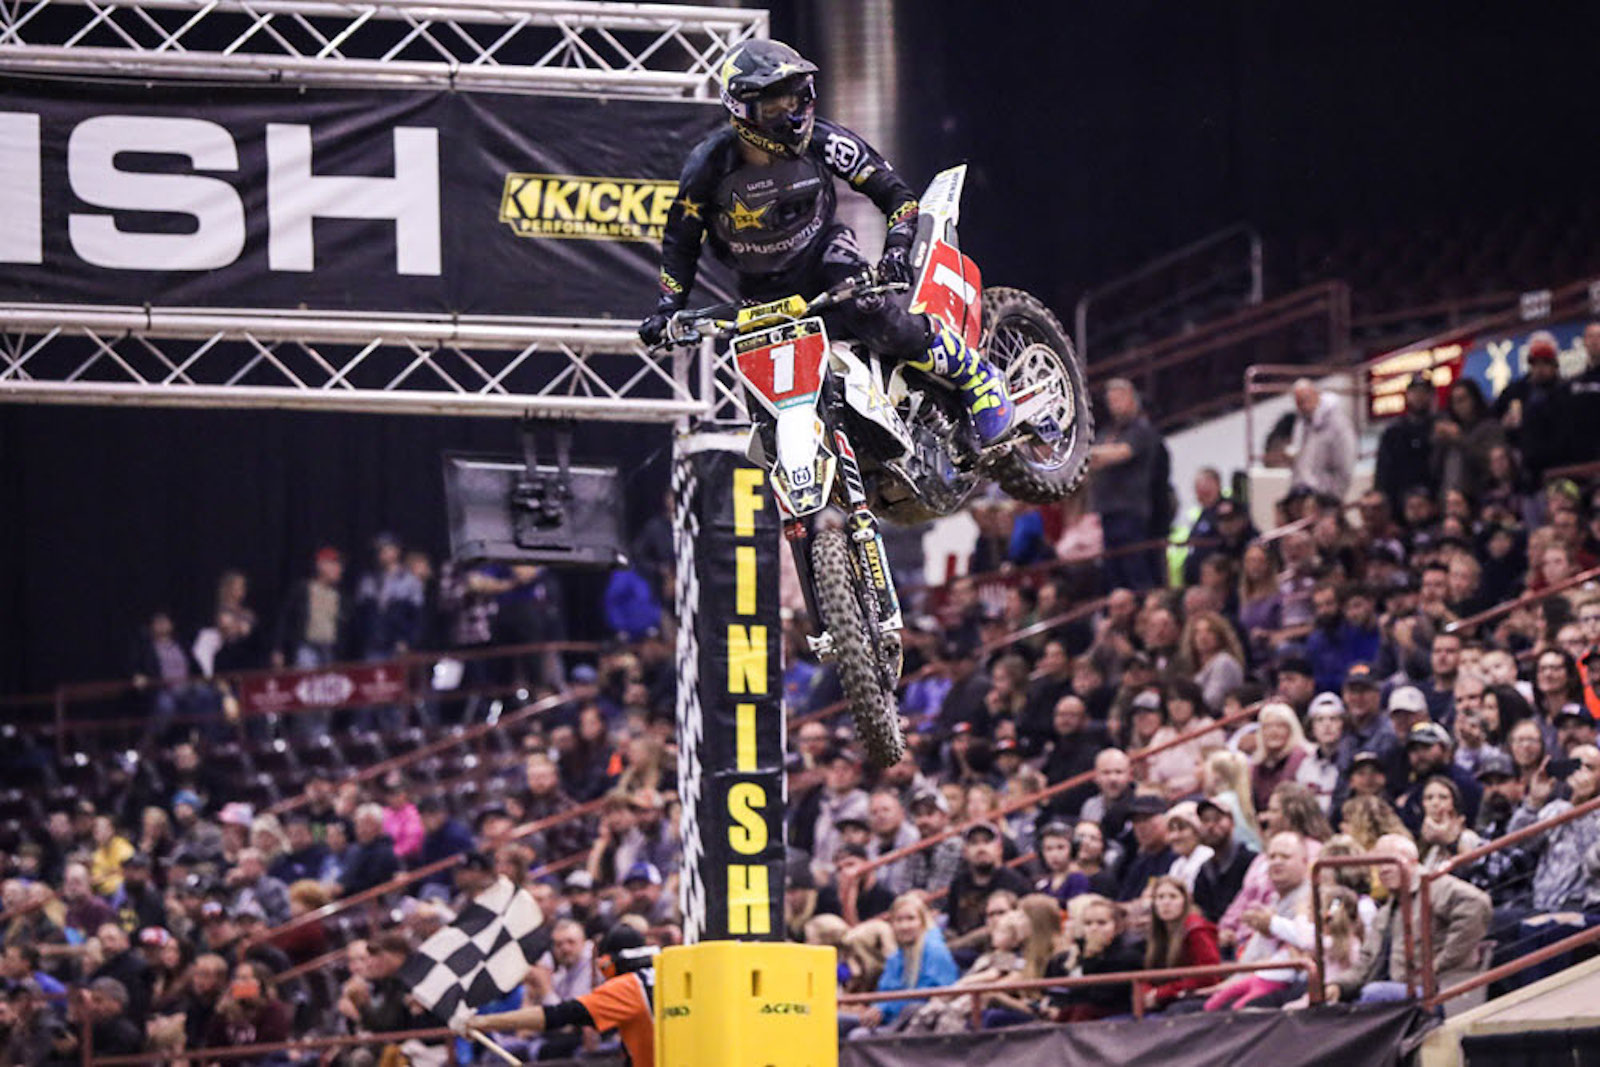 Results feed: Colton Haaker wins 2019 EnduroCross Championship